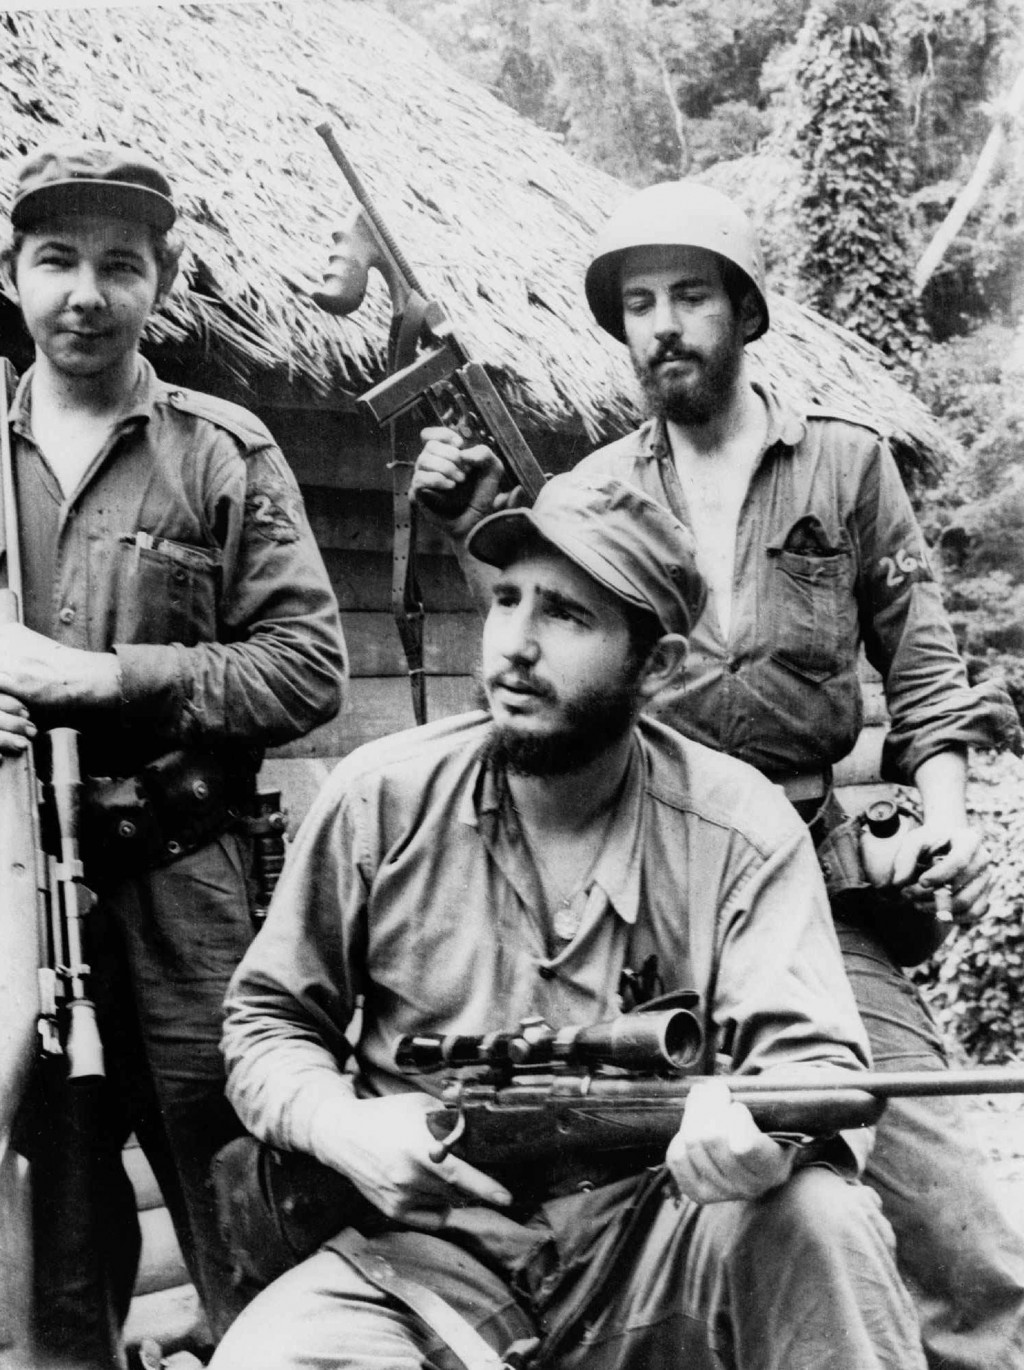 FILE - In this March 14, 1957 file photo, Fidel Castro, the young anti-Batista guerrilla leader, center, is seen with his brother Raul Castro, left, a